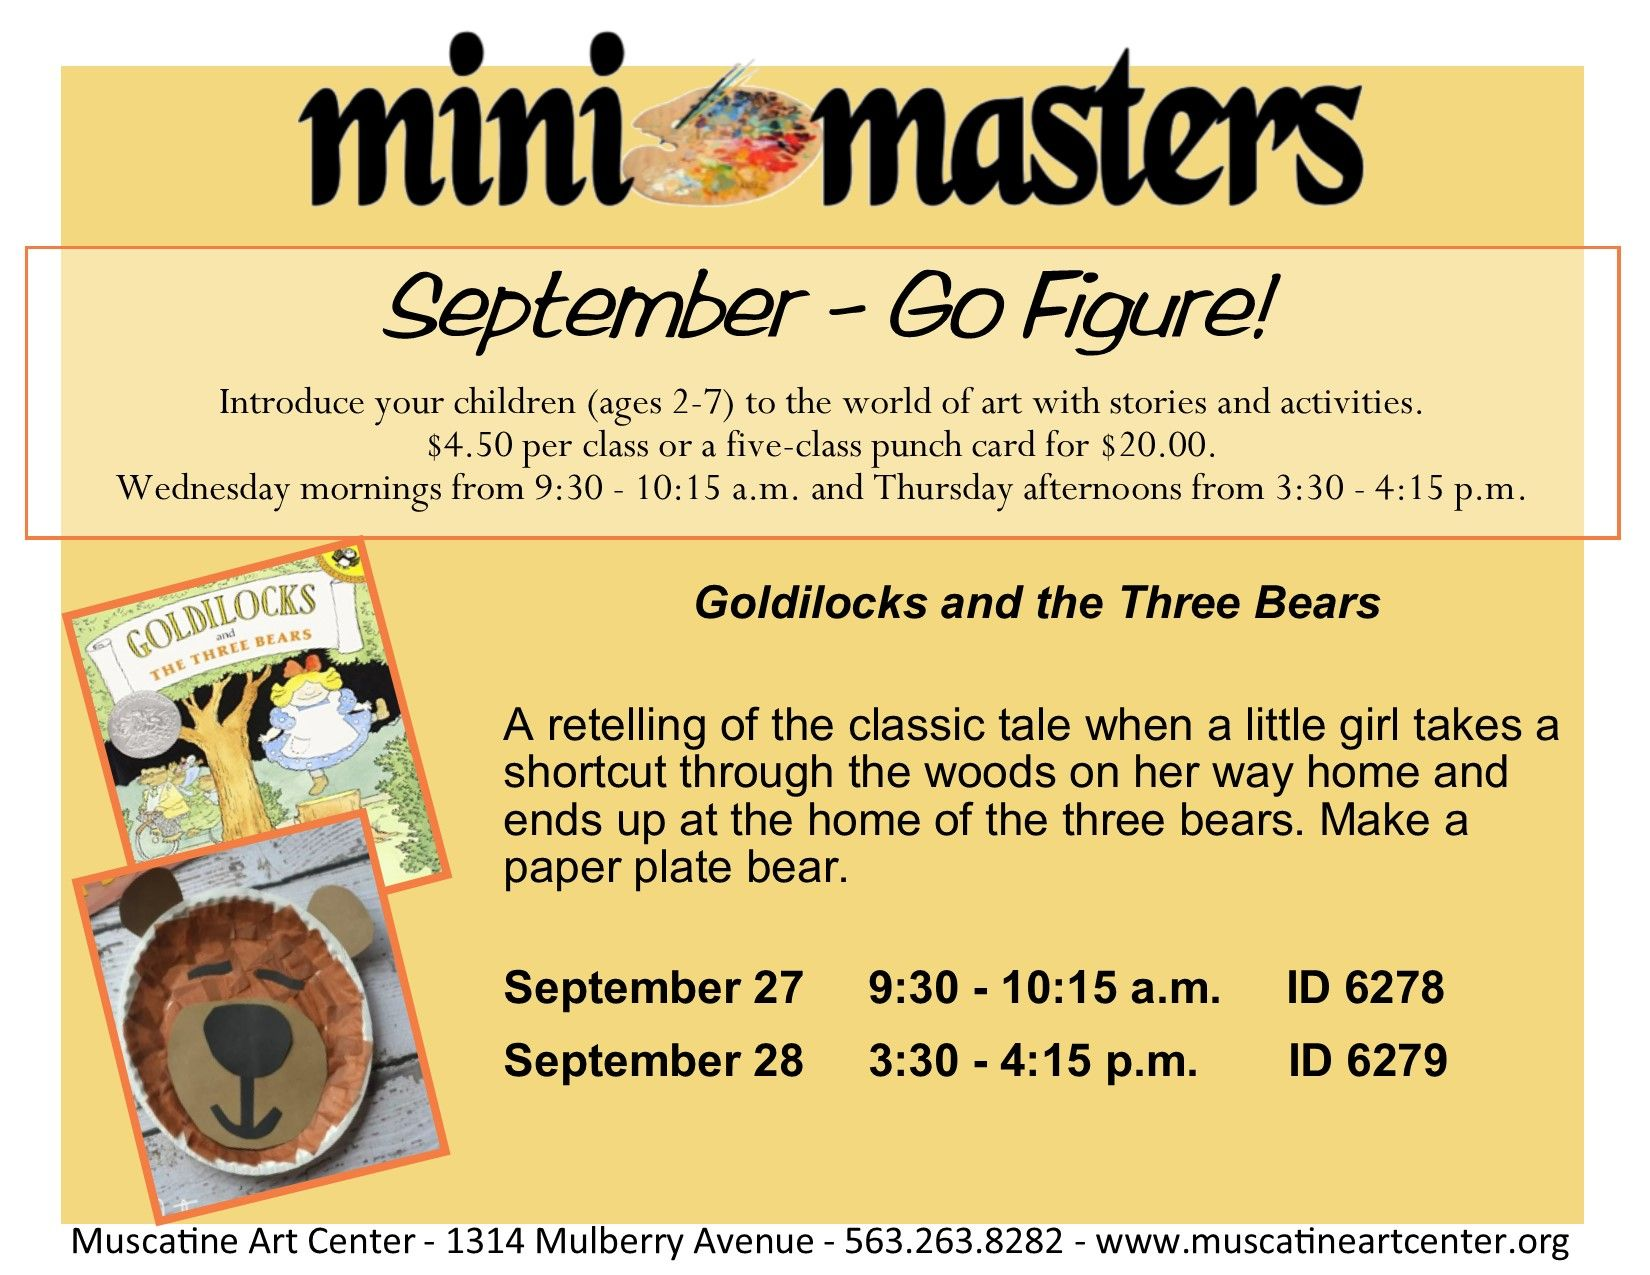 Introduce your children (ages 2-7) to the world of art with